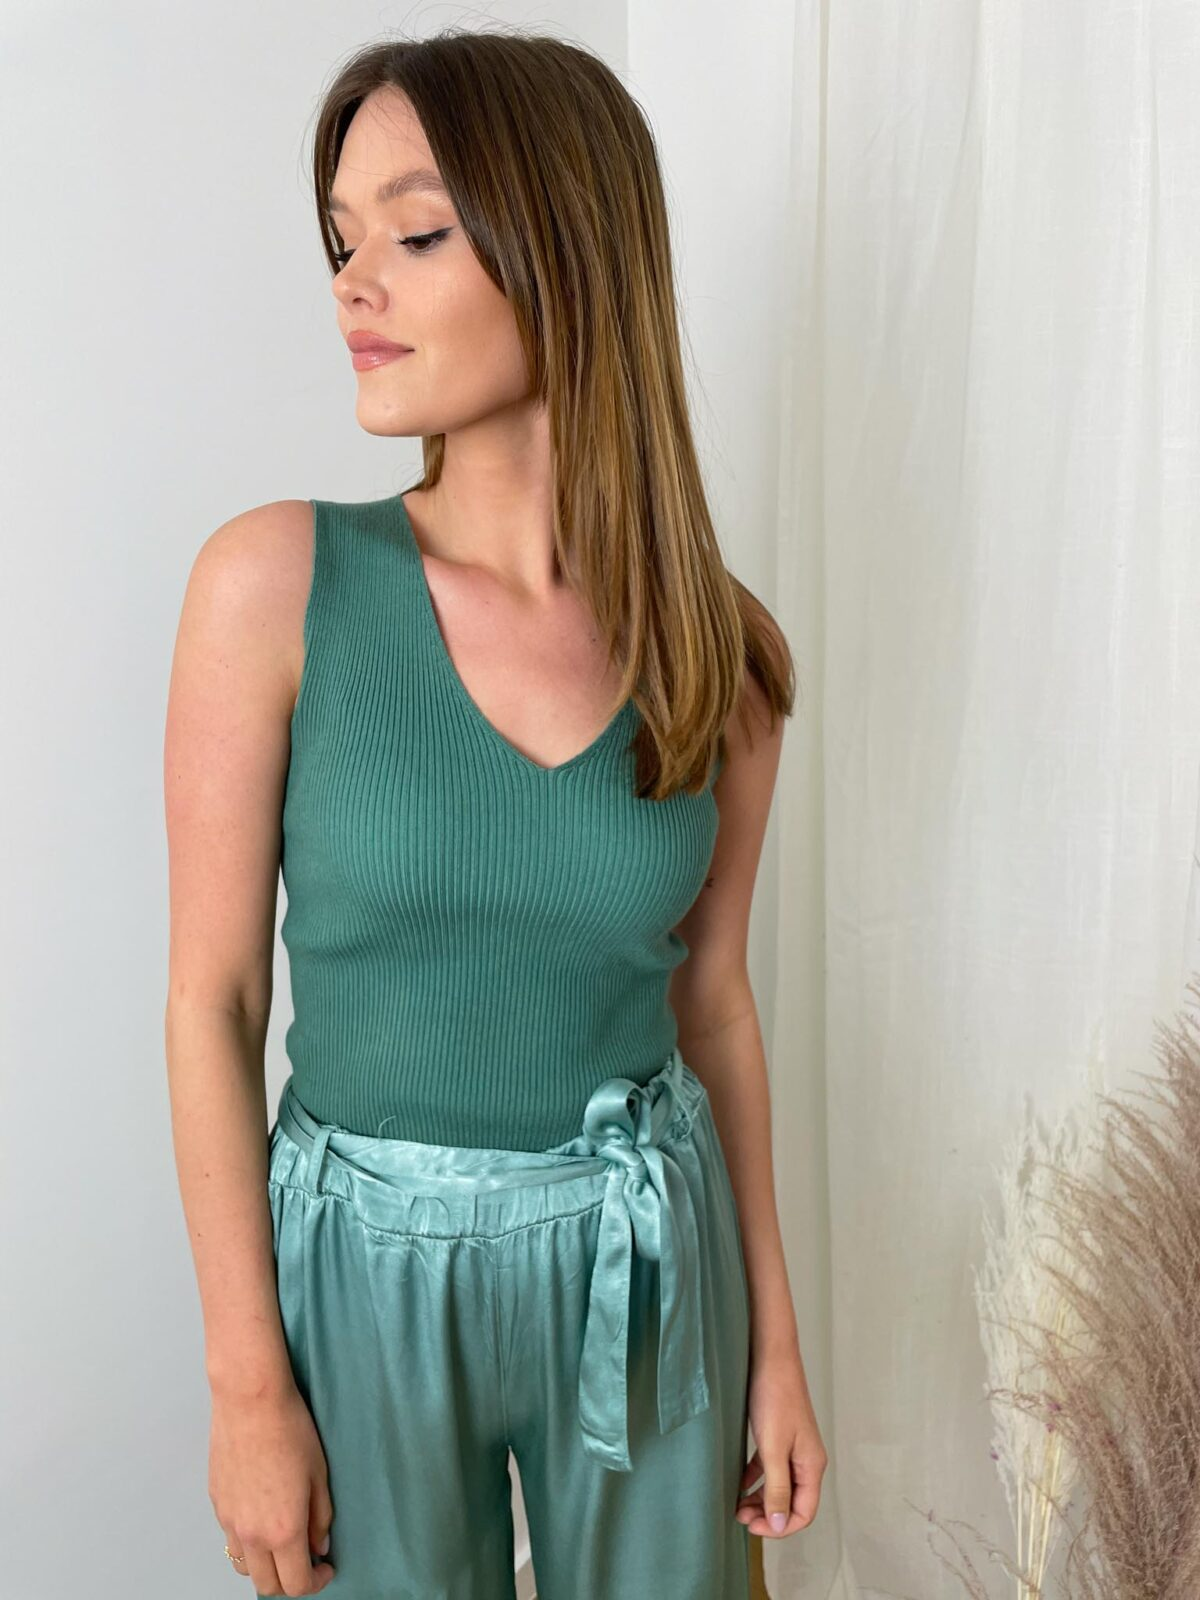 woman with a green top and green satin pants